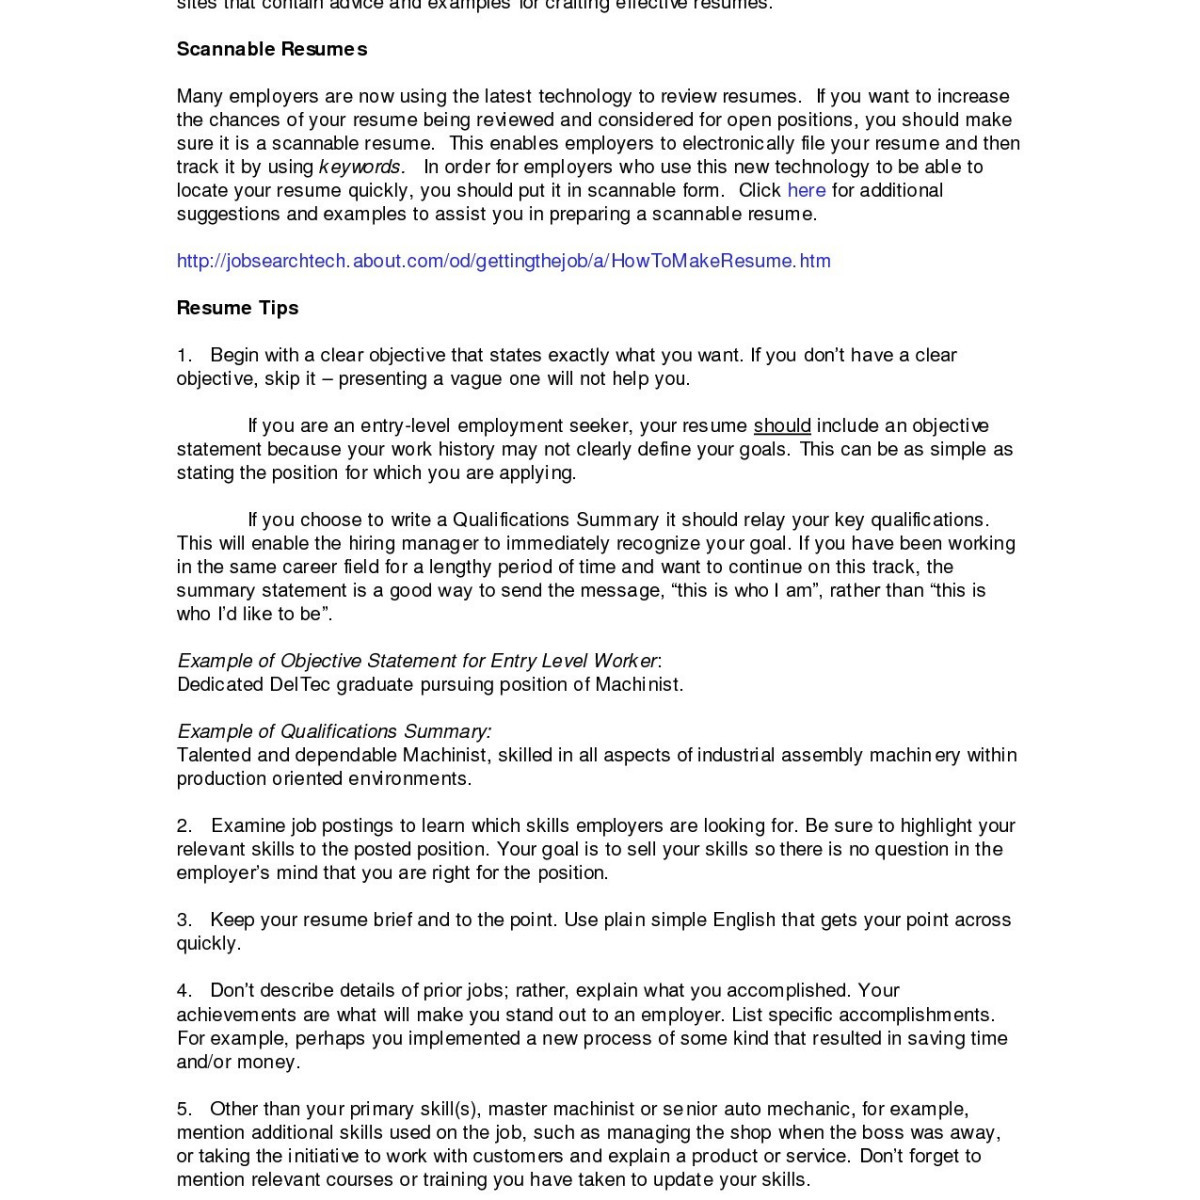 Resume Template for Scholarship - College Scholarship Resume Best College Scholarship Resume